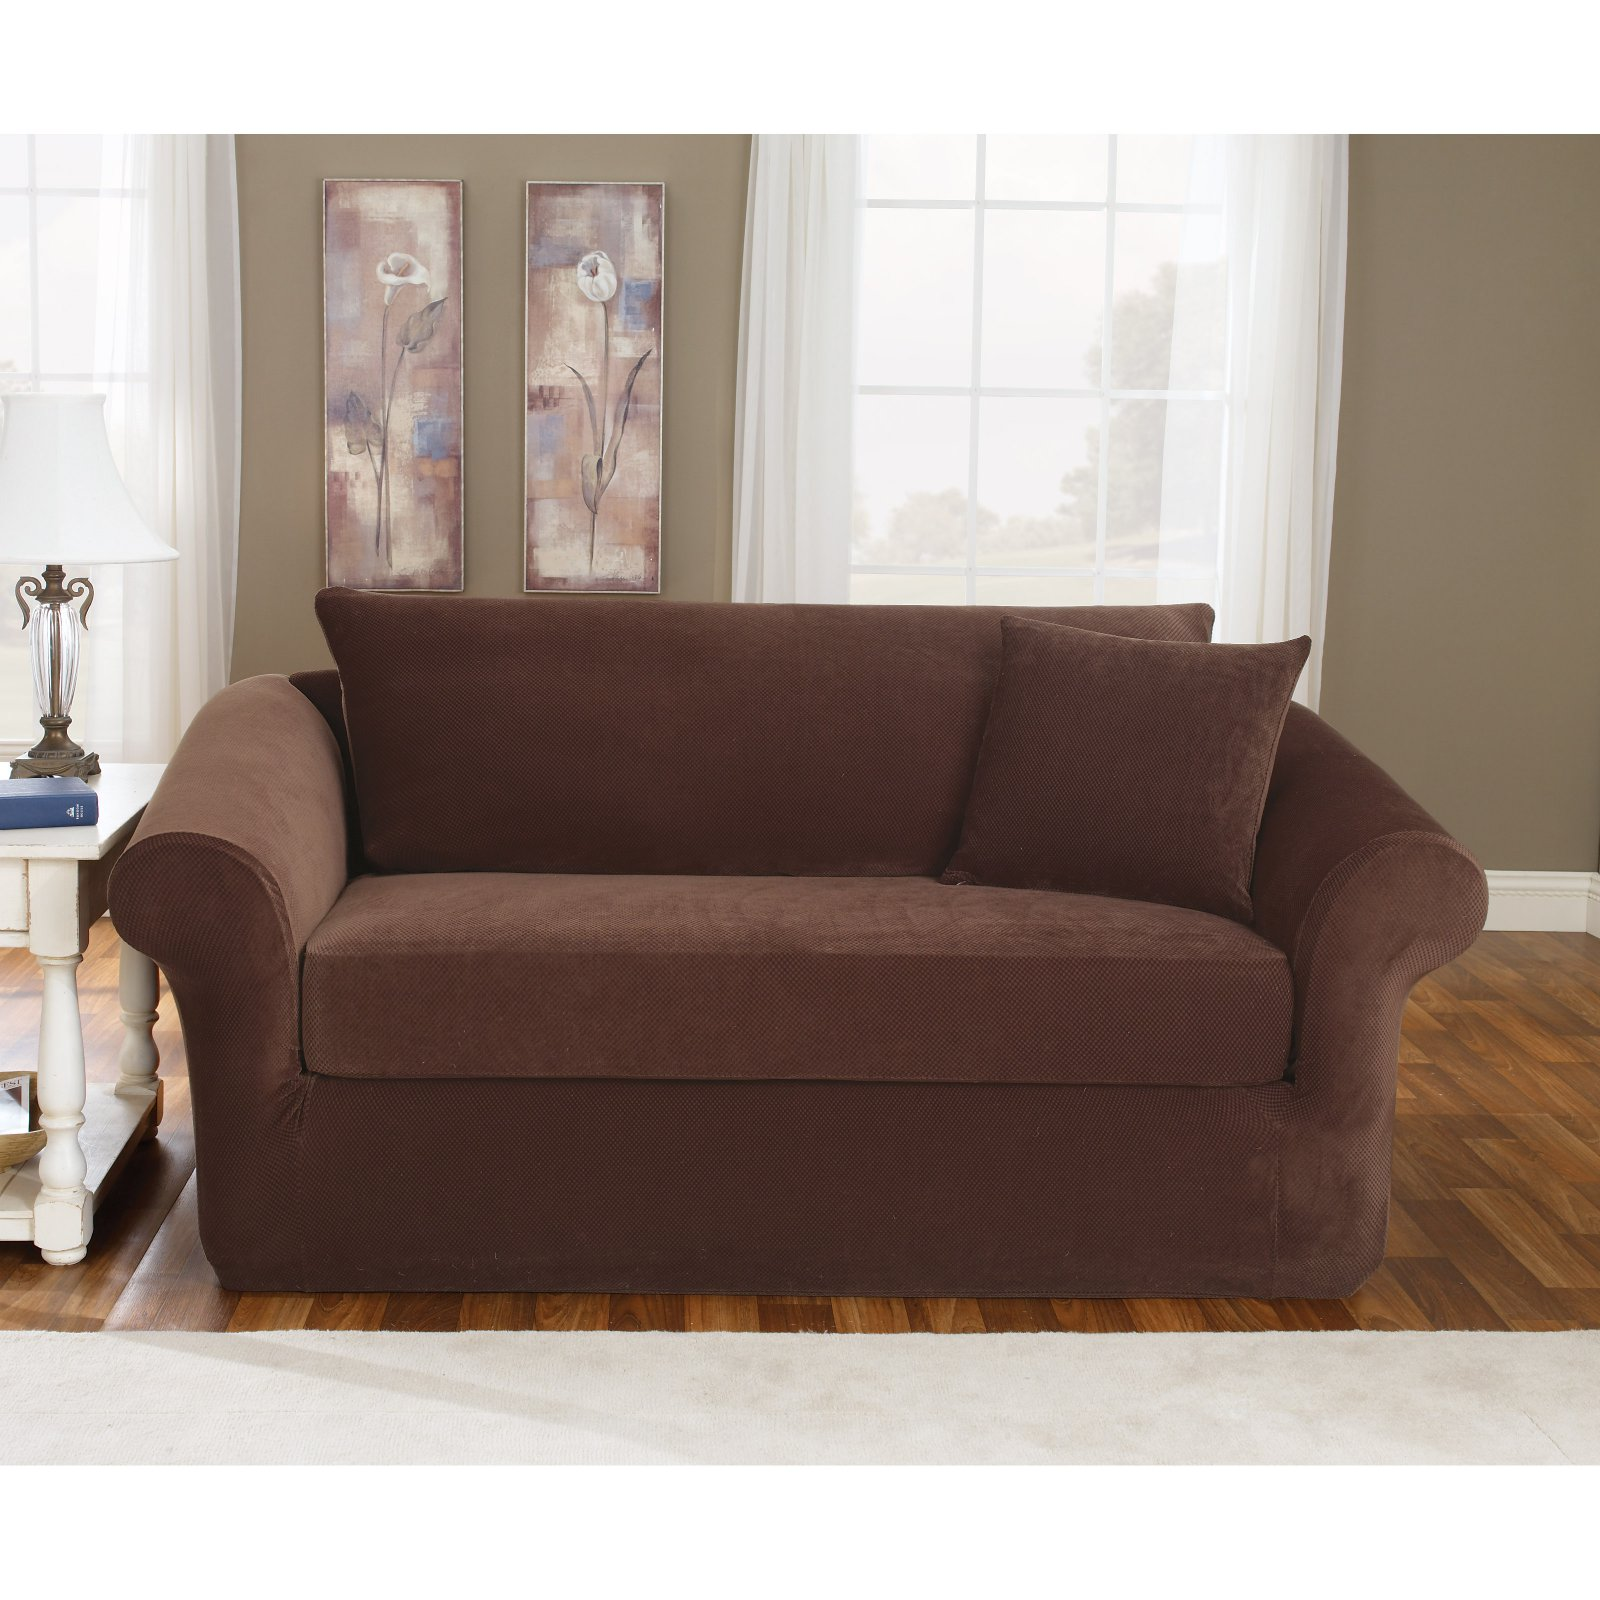 3 Piece Sectional Couch Covers Walmart